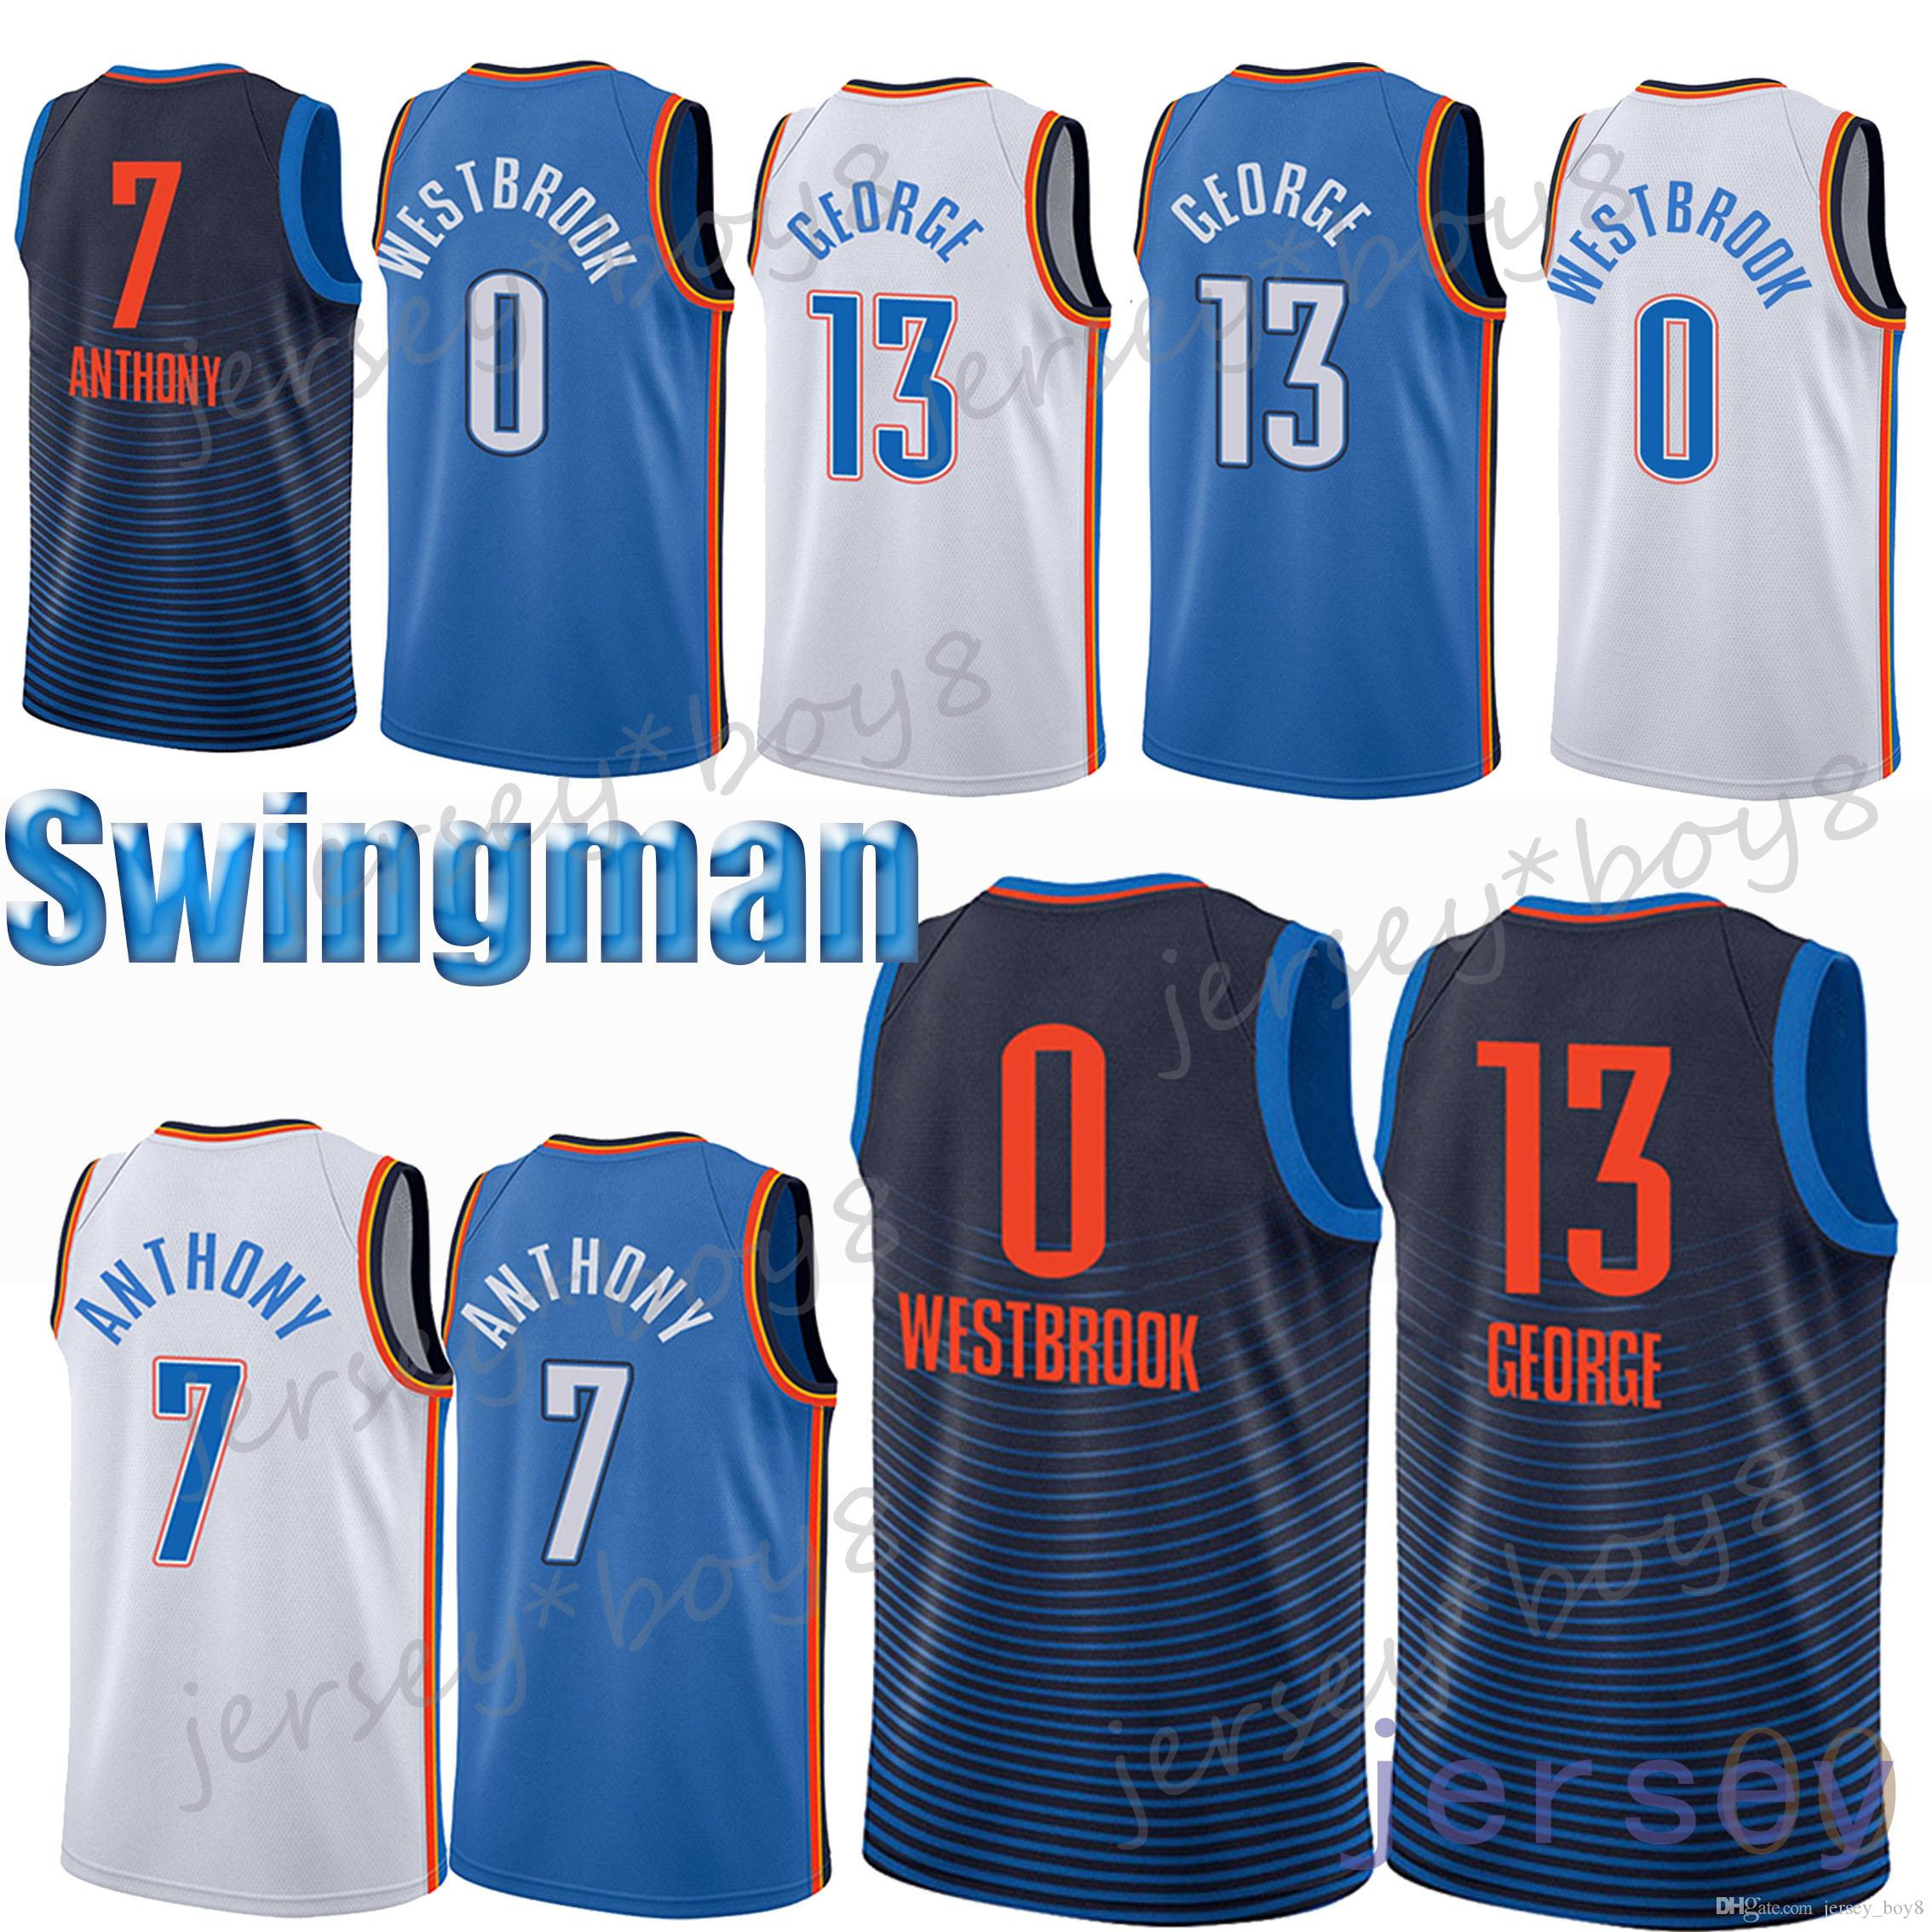 3004cc8e0331 ... jersey 0 authentic turquoise nba italy 0 russell westbrook jerseys 13  paul george jerseys 7 carmelo anthony embroidery logos 100 stitched ...